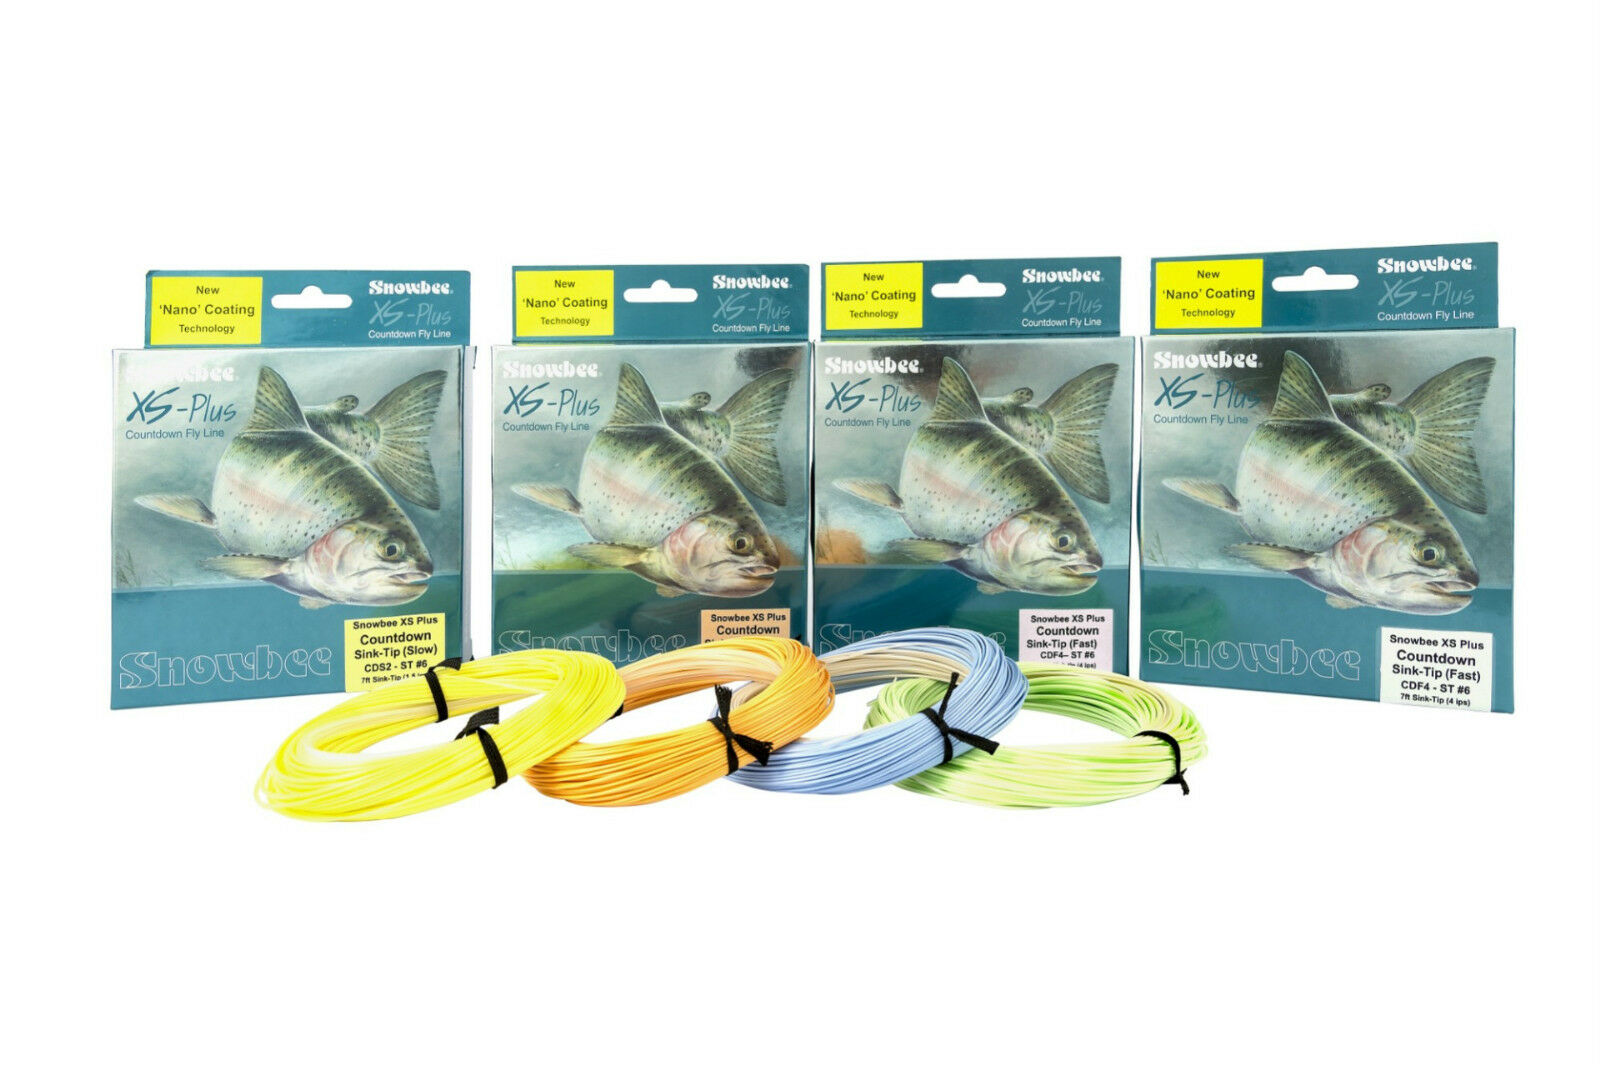 Snowbee XS-Plus Countdown Fast Sink-Tip Fly Lines 7 & 12ft Tips with Nano Coat